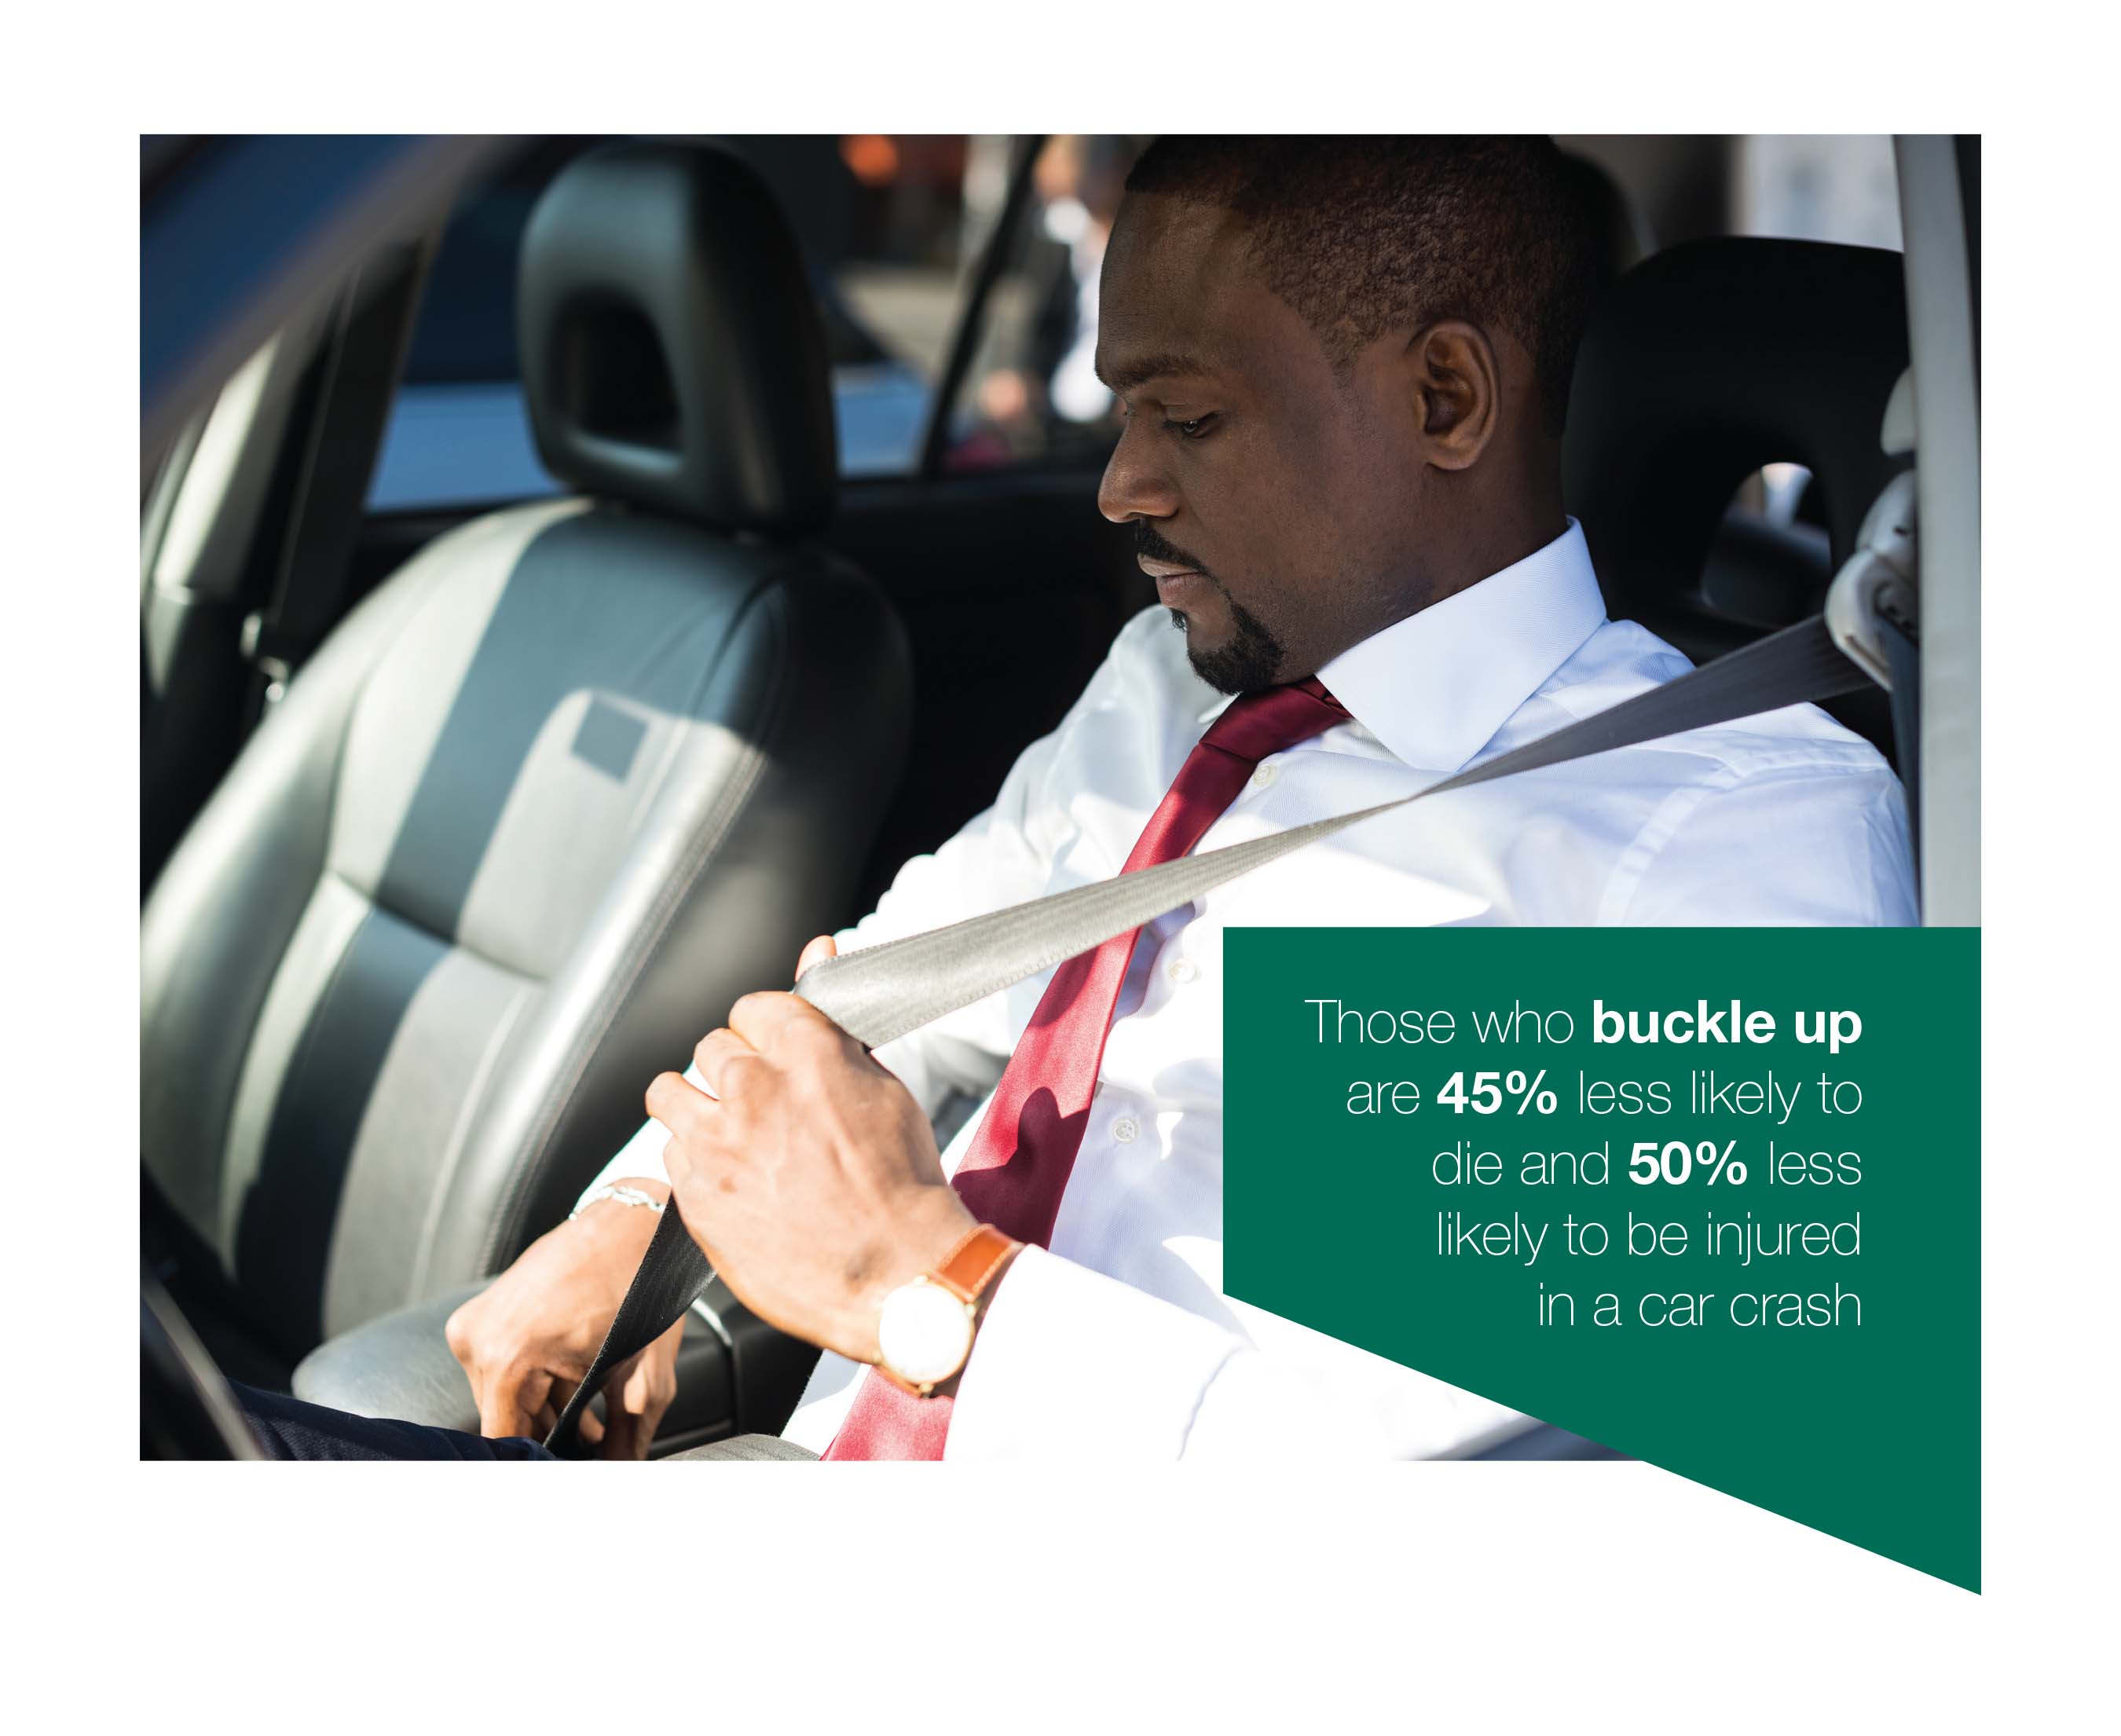 Those who buckle up are 45% less likely to die and 50% less likely to be injured in a car crash